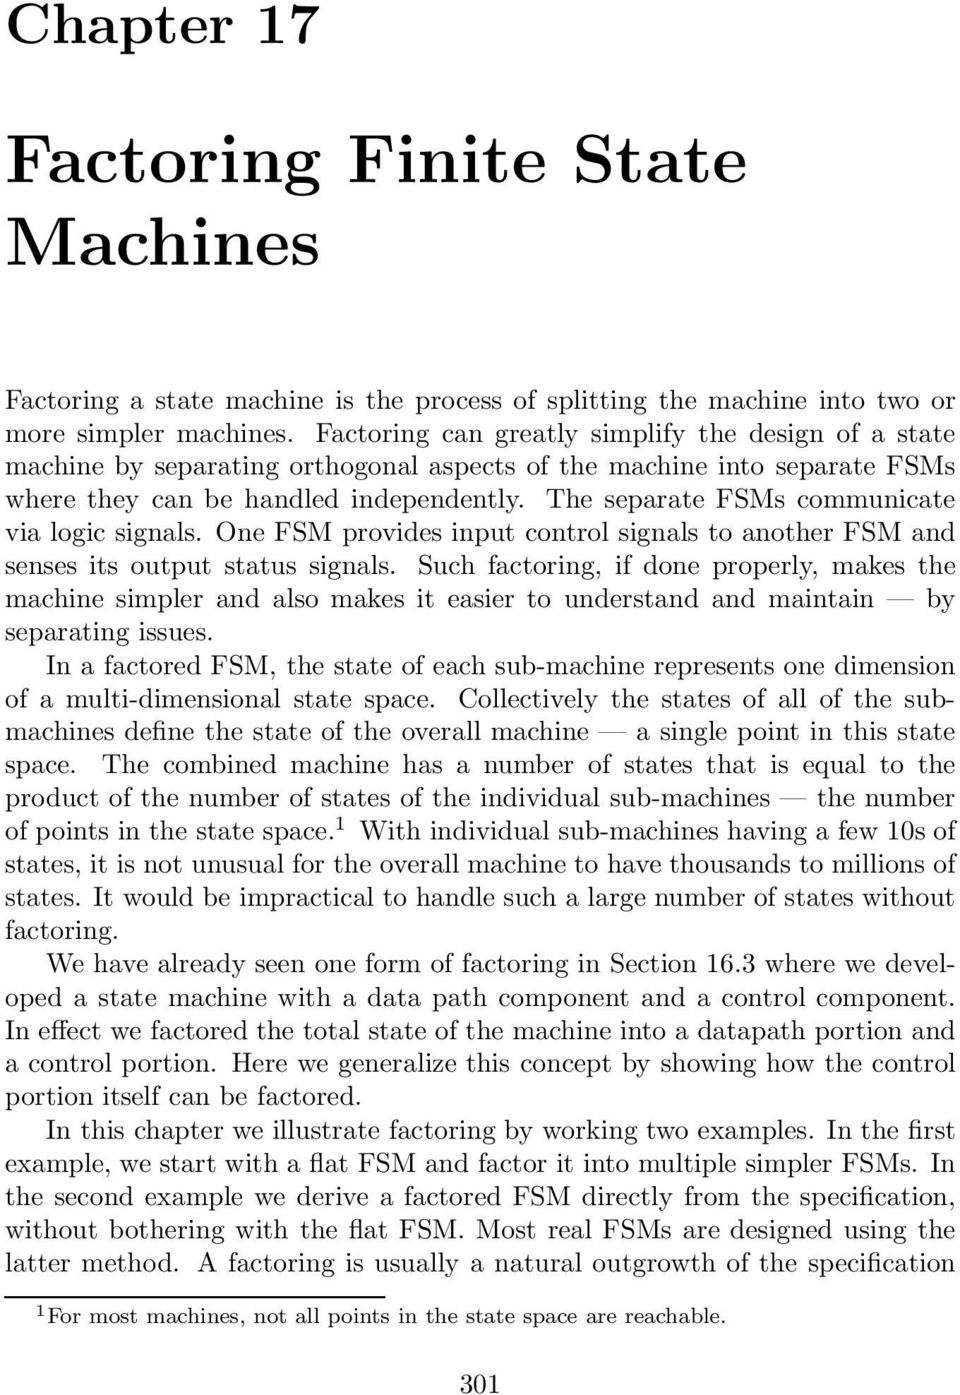 factoring machine